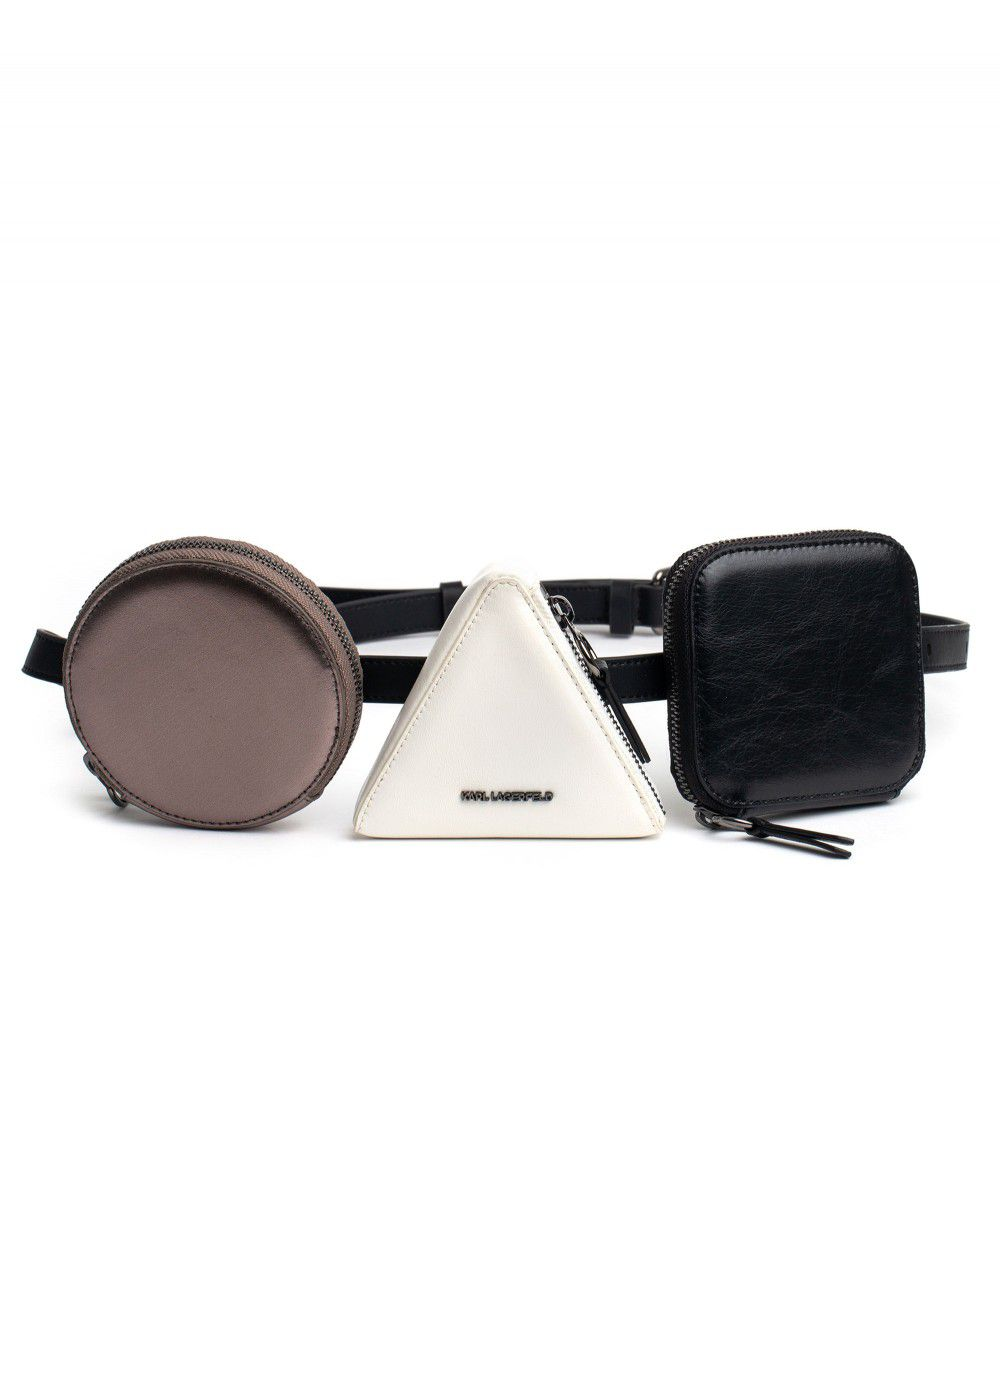 Karl Lagerfeld Belt Bag